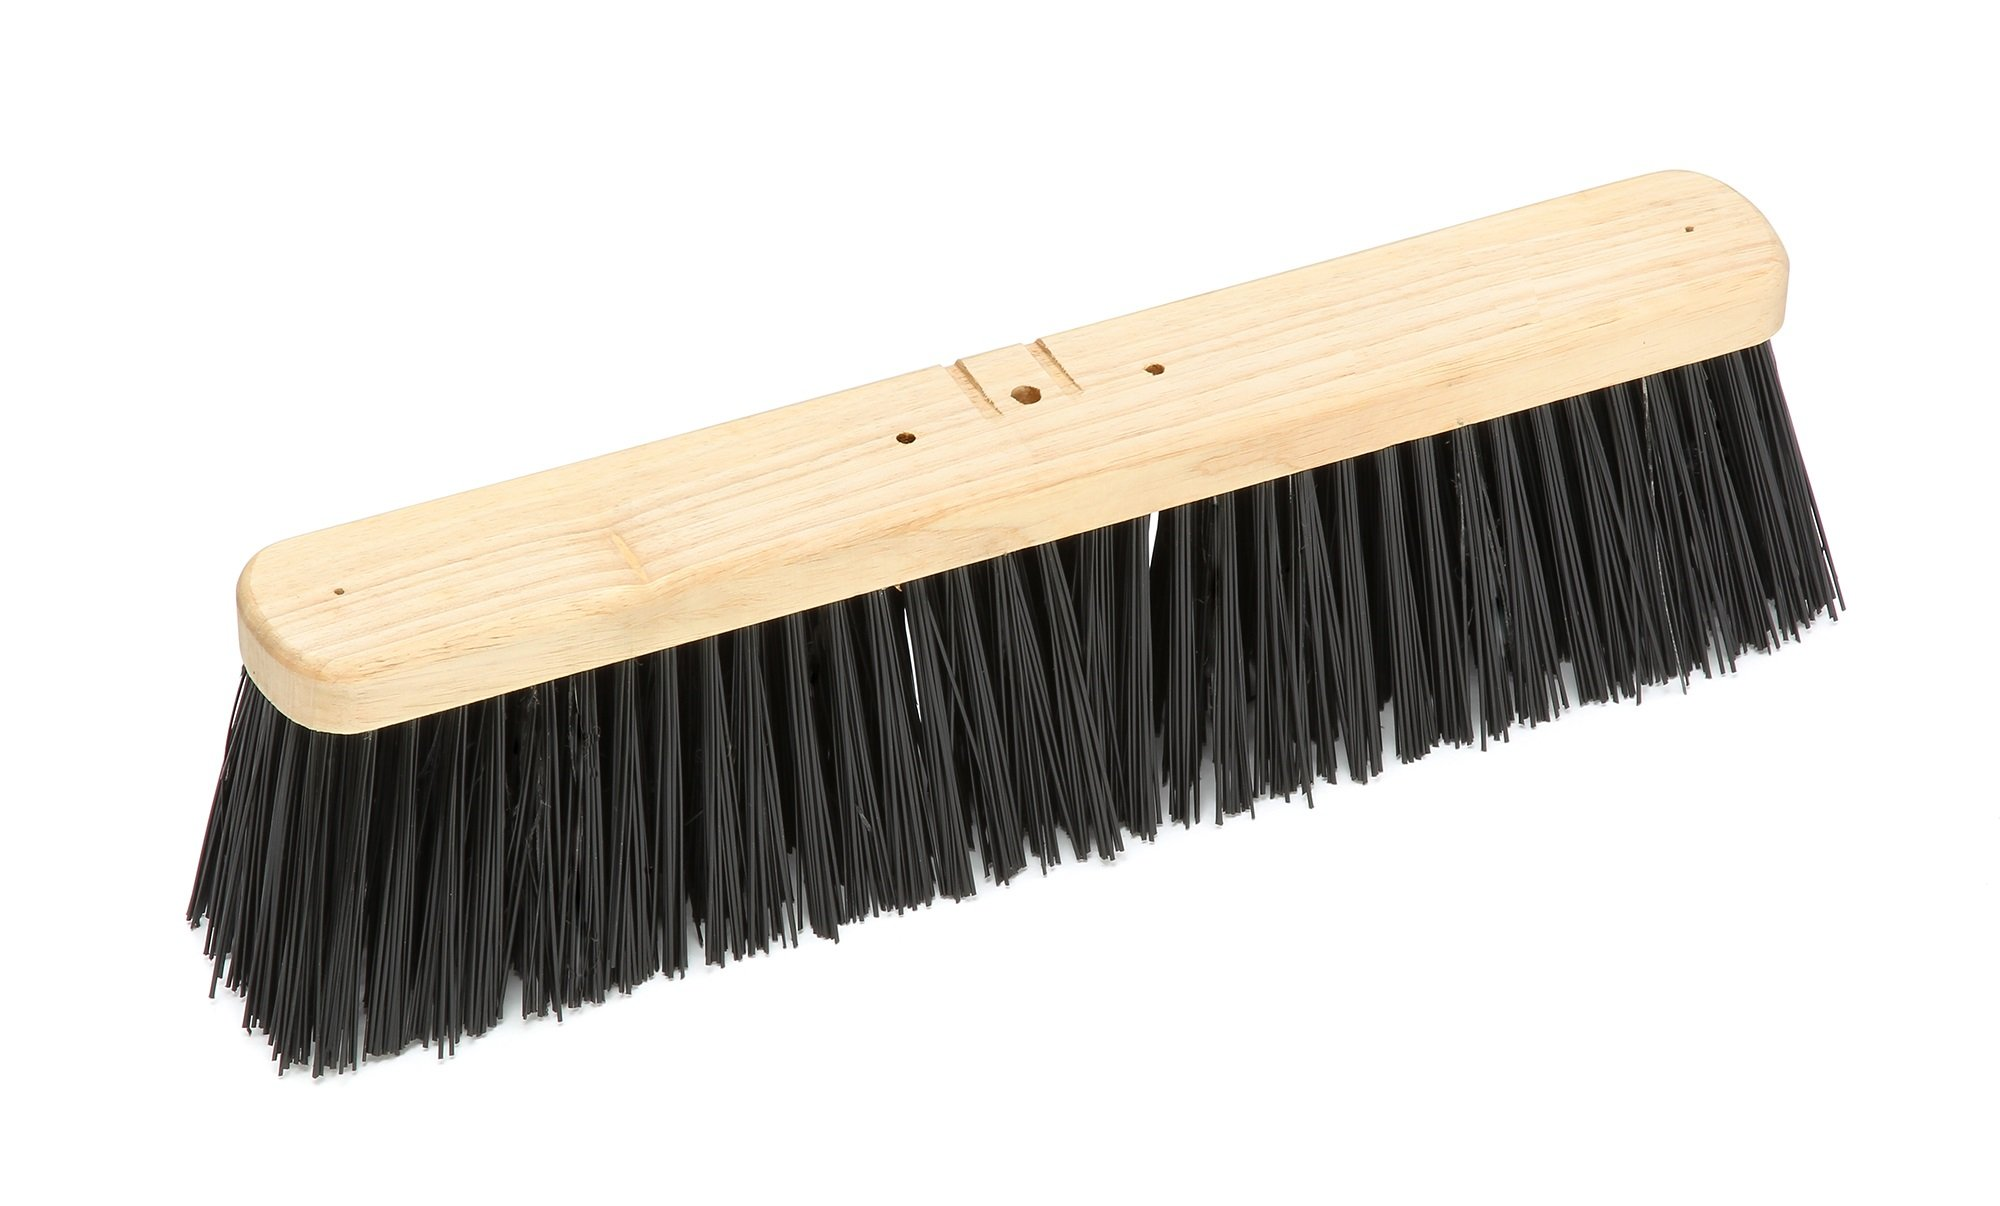 Harper Brush 143712 Broom Head, Polypropylene Fiber, Outdoor, Rough Wet or Dry Surface, Hard Wood, 18'' (Pack of 6)